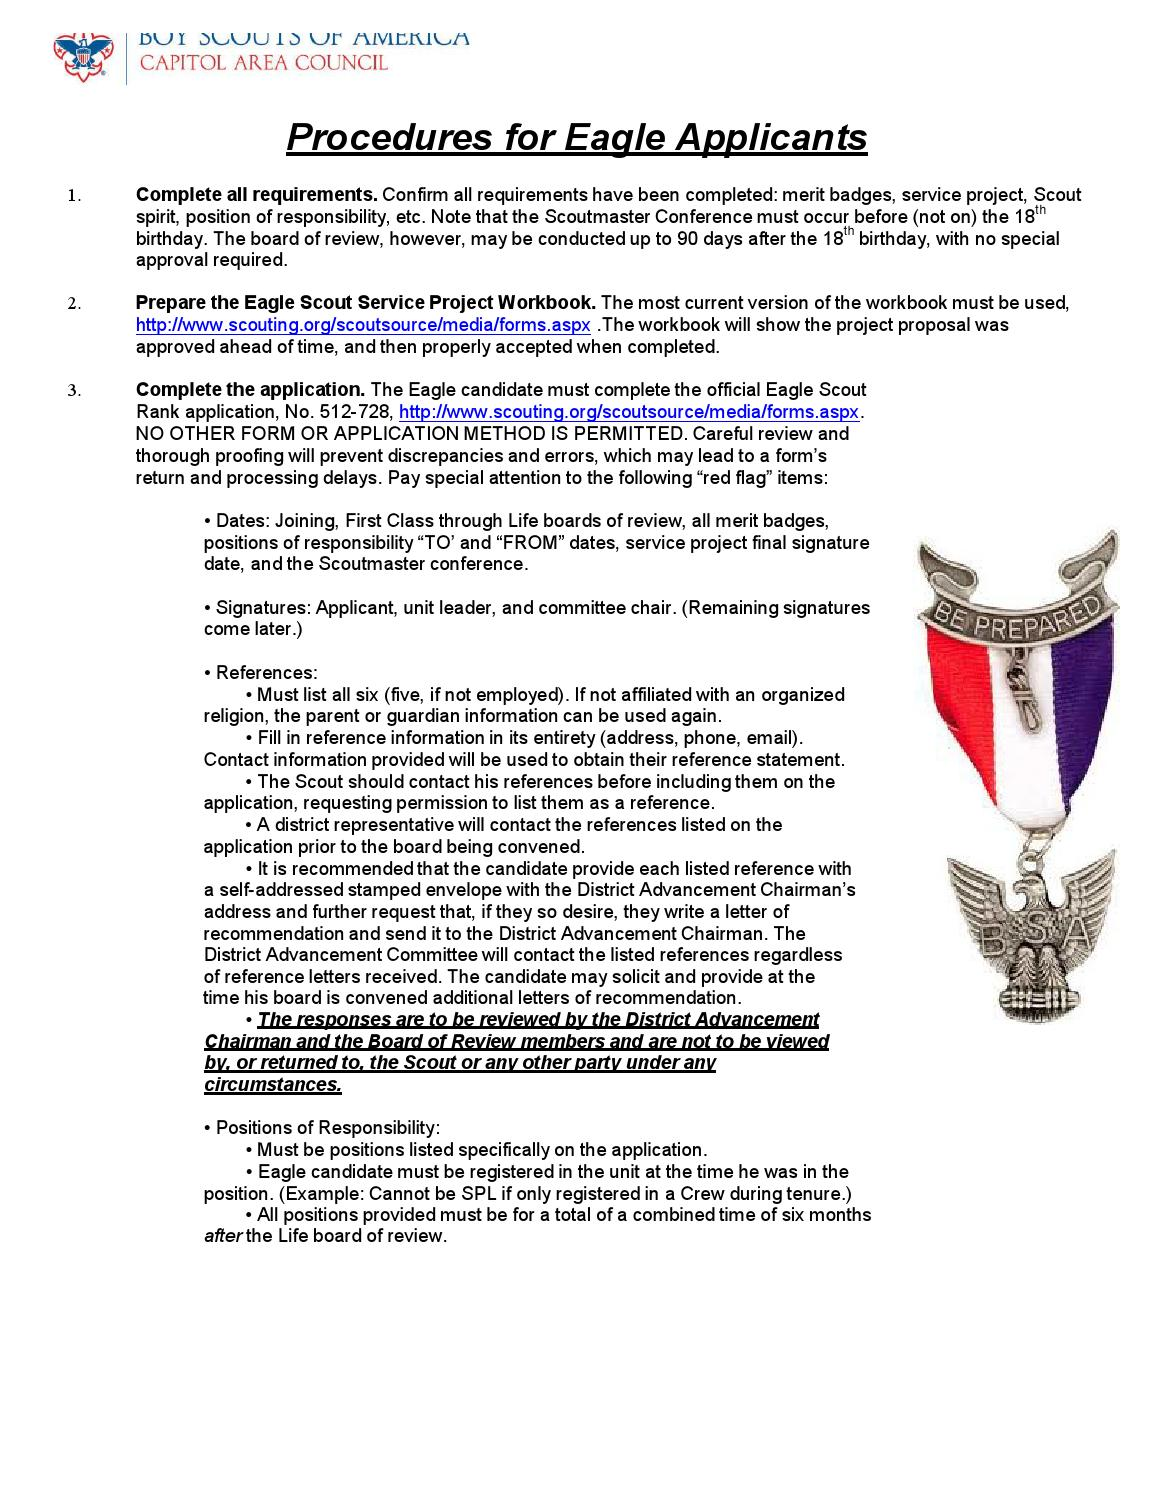 Workbooks eagle scout service project workbook : Eagle scout procedures by Paul Mayhew - issuu